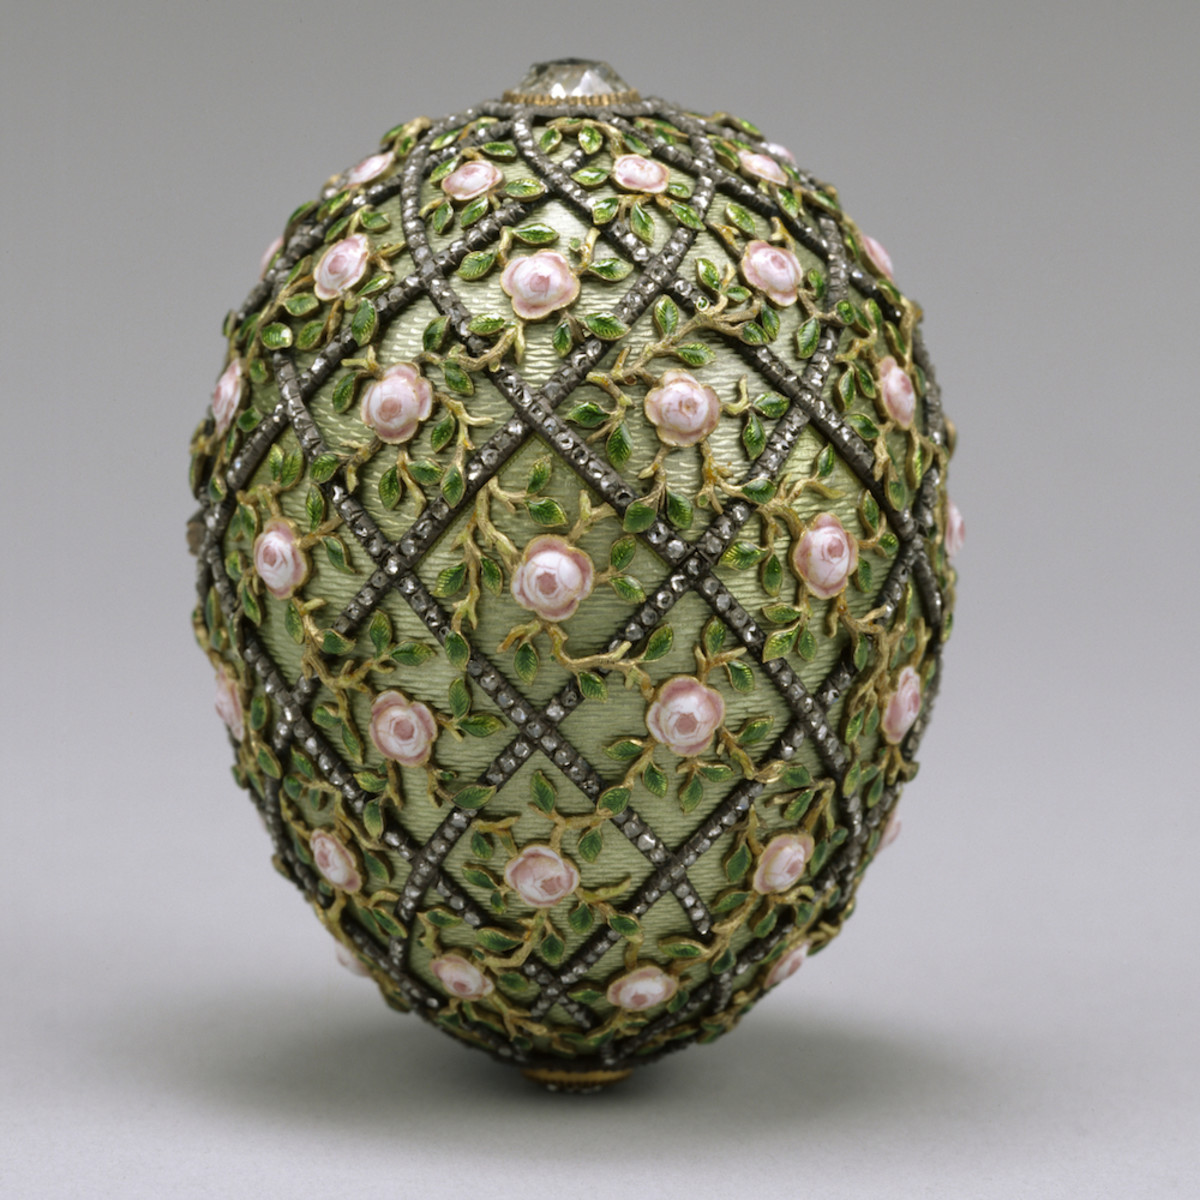 The Faberge Rose Trellis Egg 1907